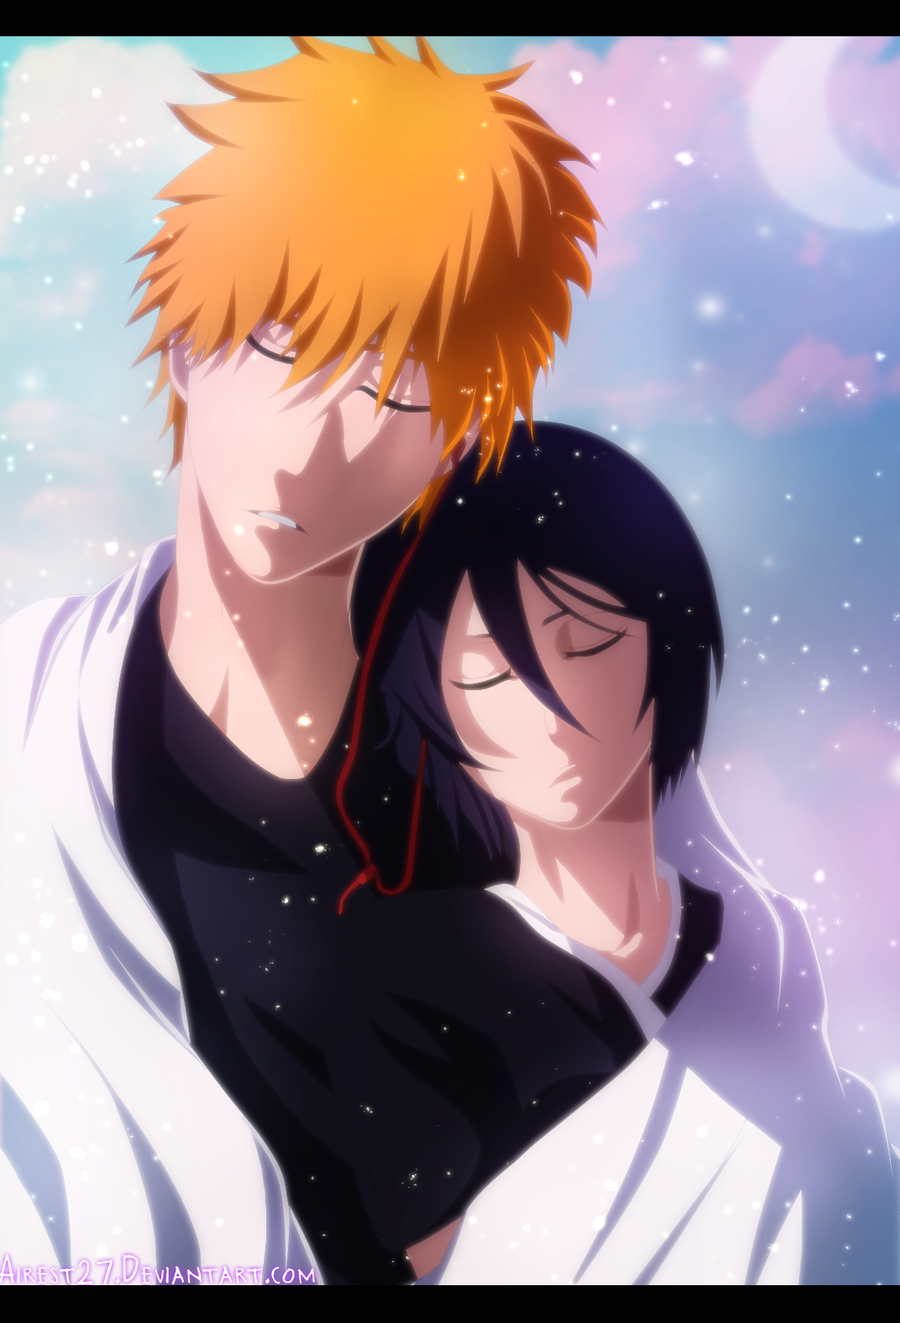 Ichigo Kurosaki and Rukia Kuchiki - Bleach |Color| by ...